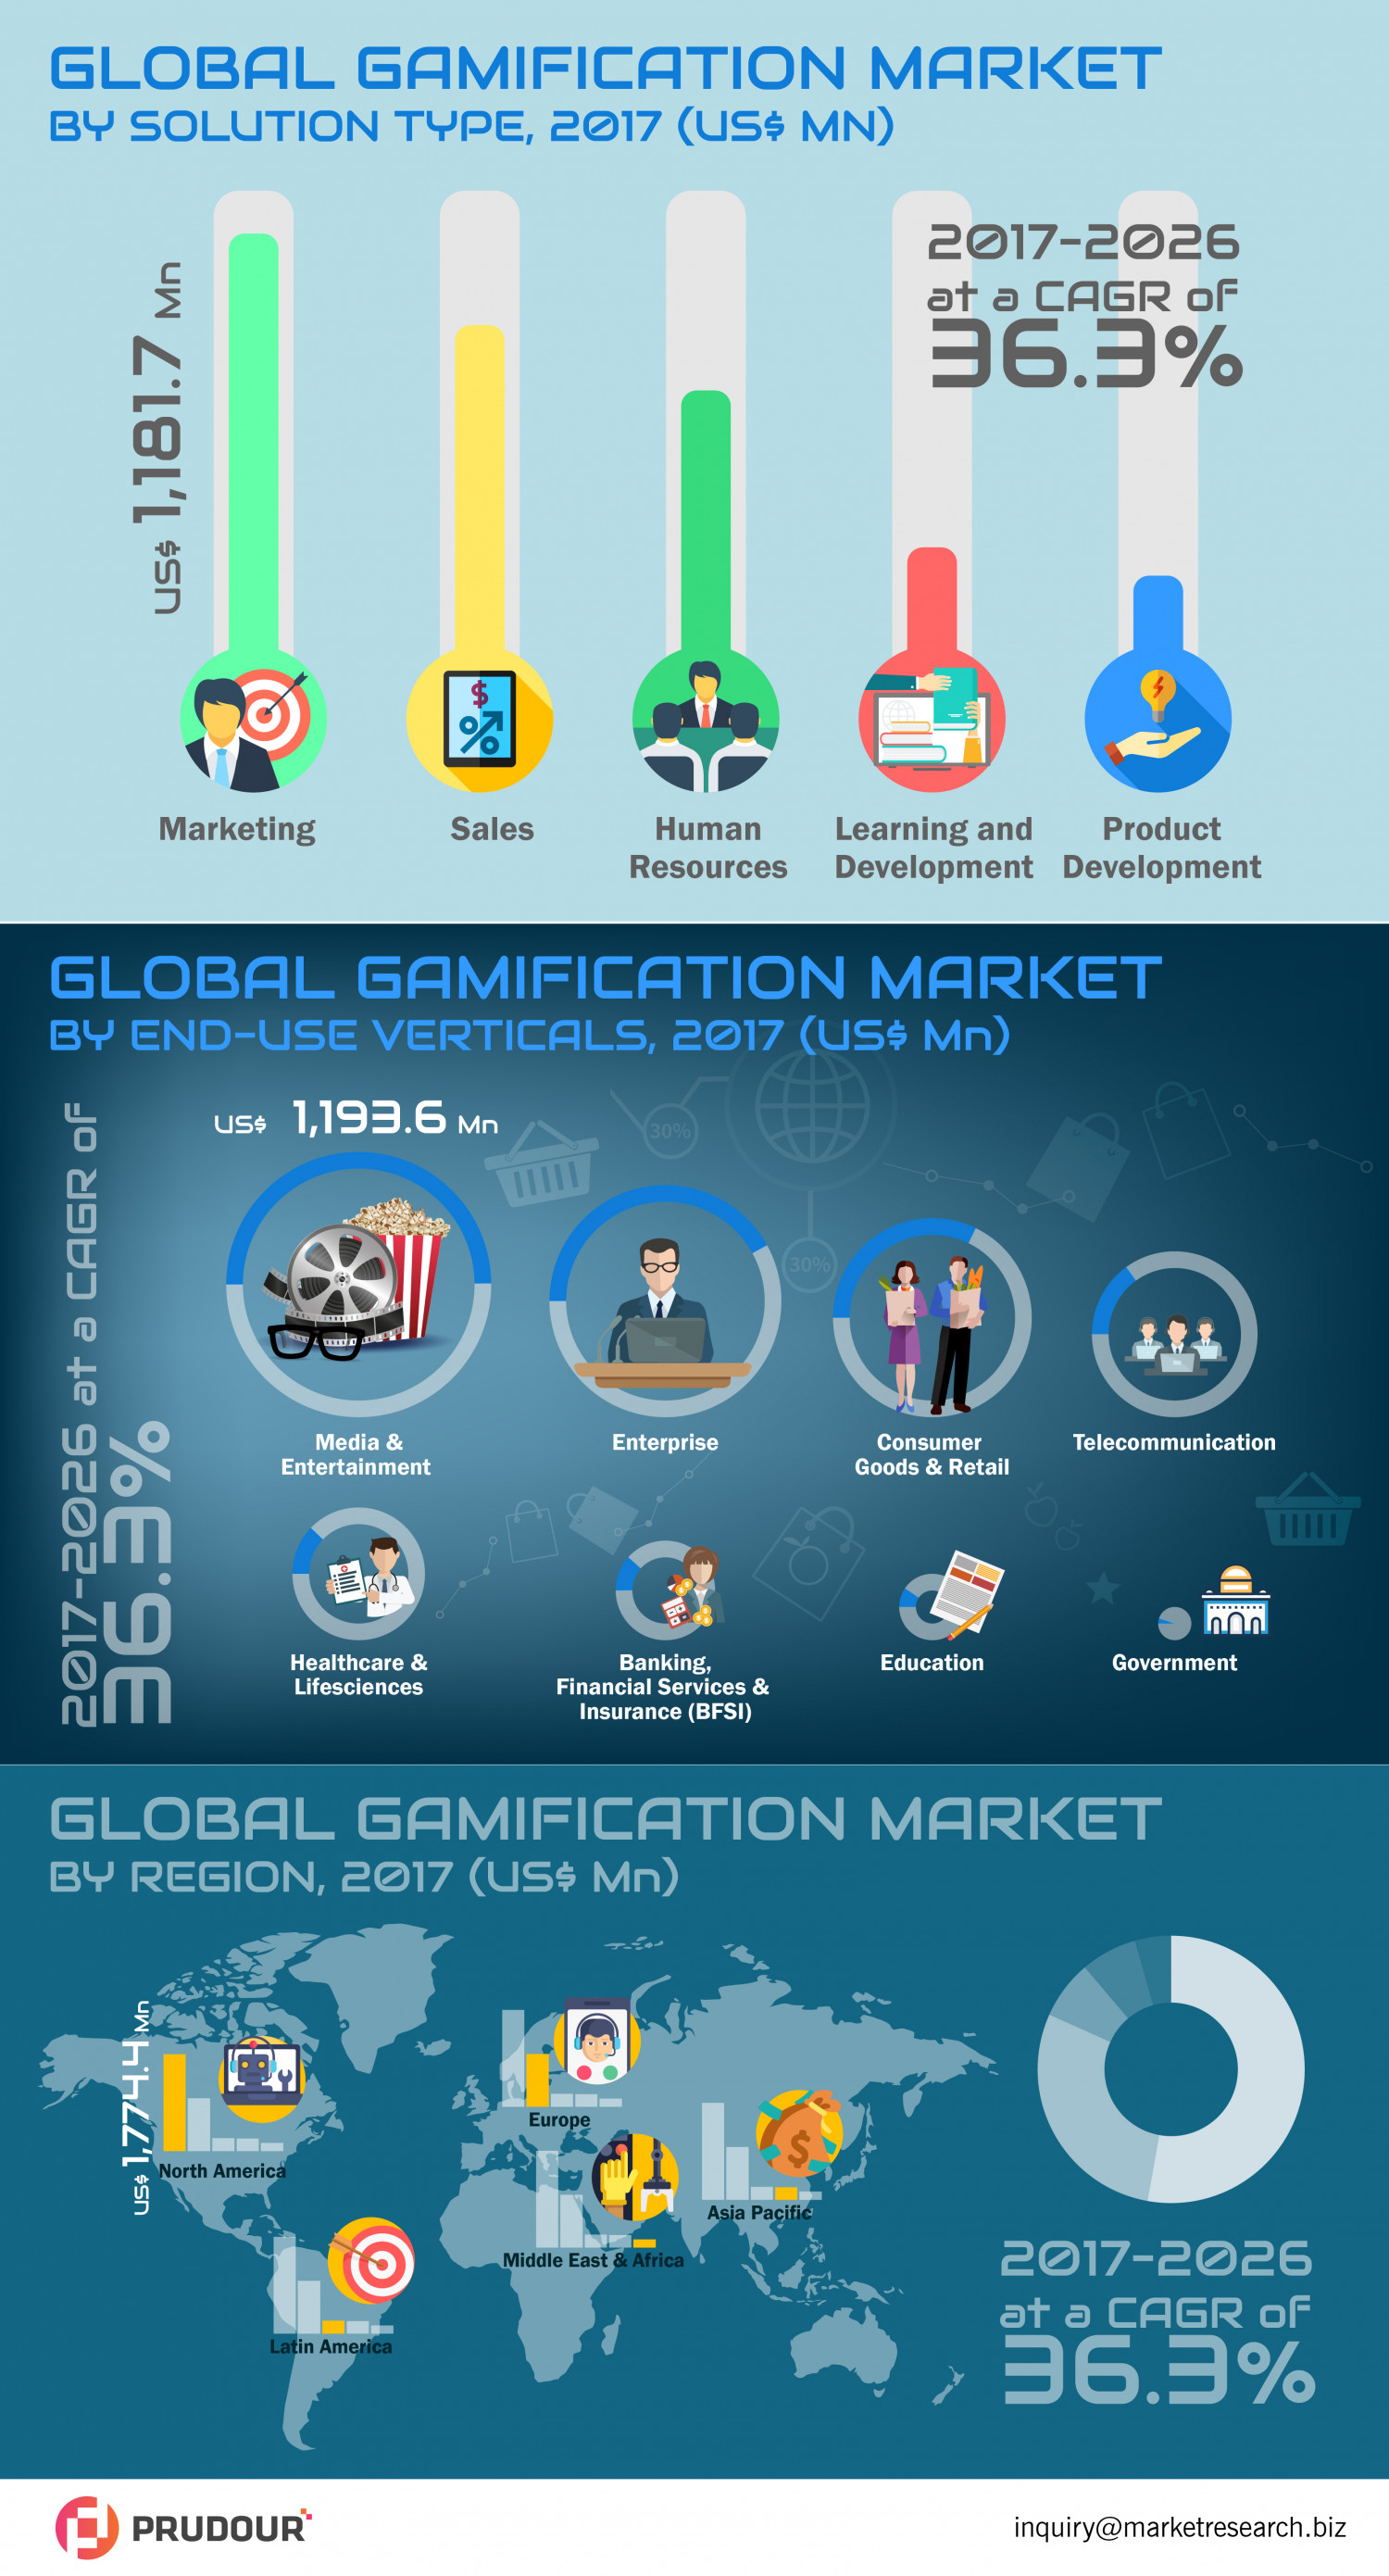 Gamification Market was valued at US$ 3.3 Bn in 2017 Infographic